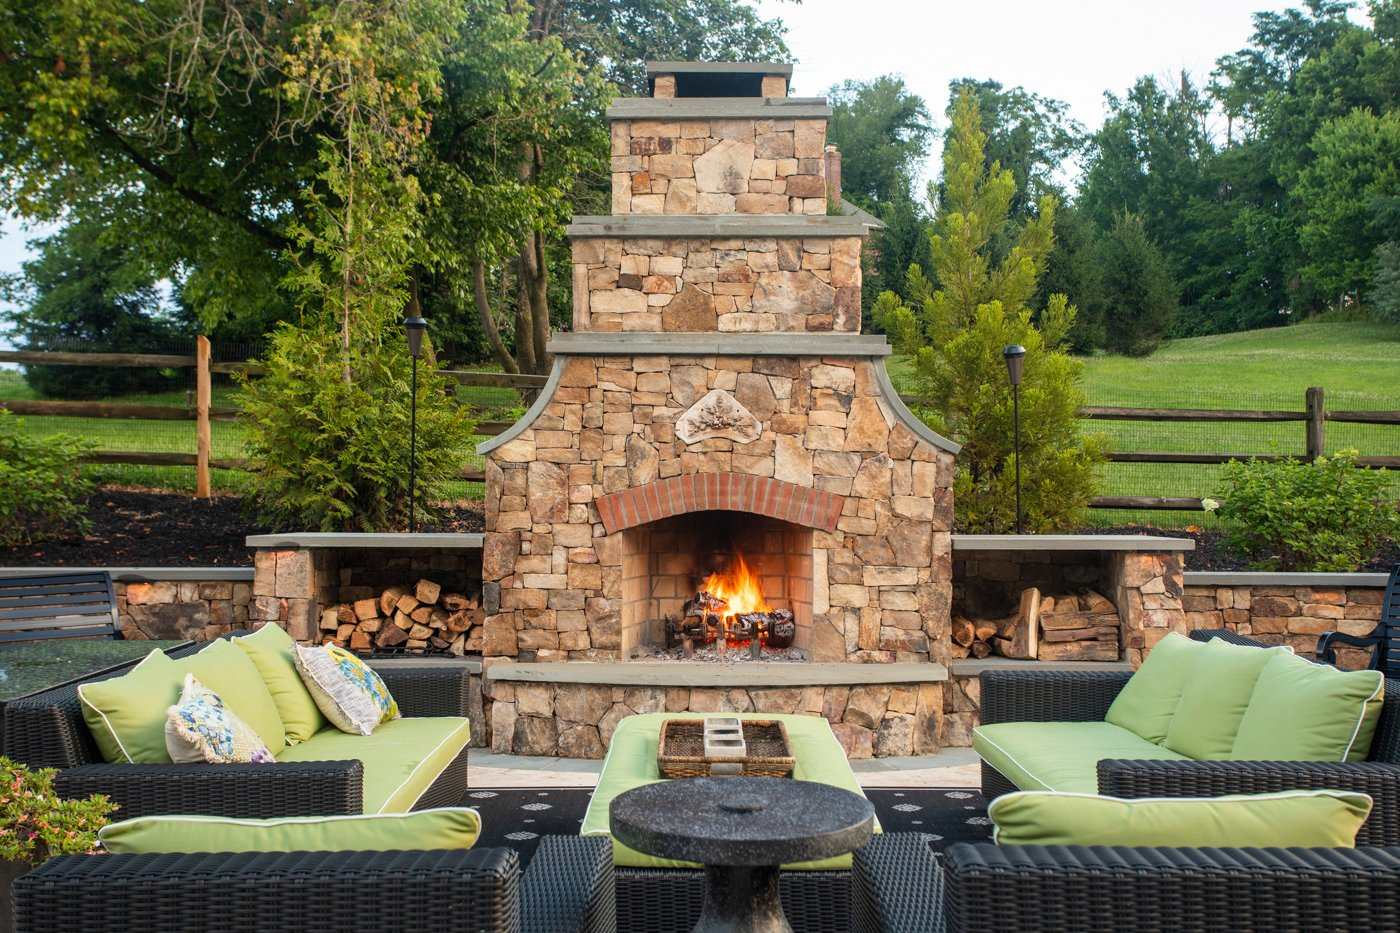 outdoor fireplace stone wall seating hardscape